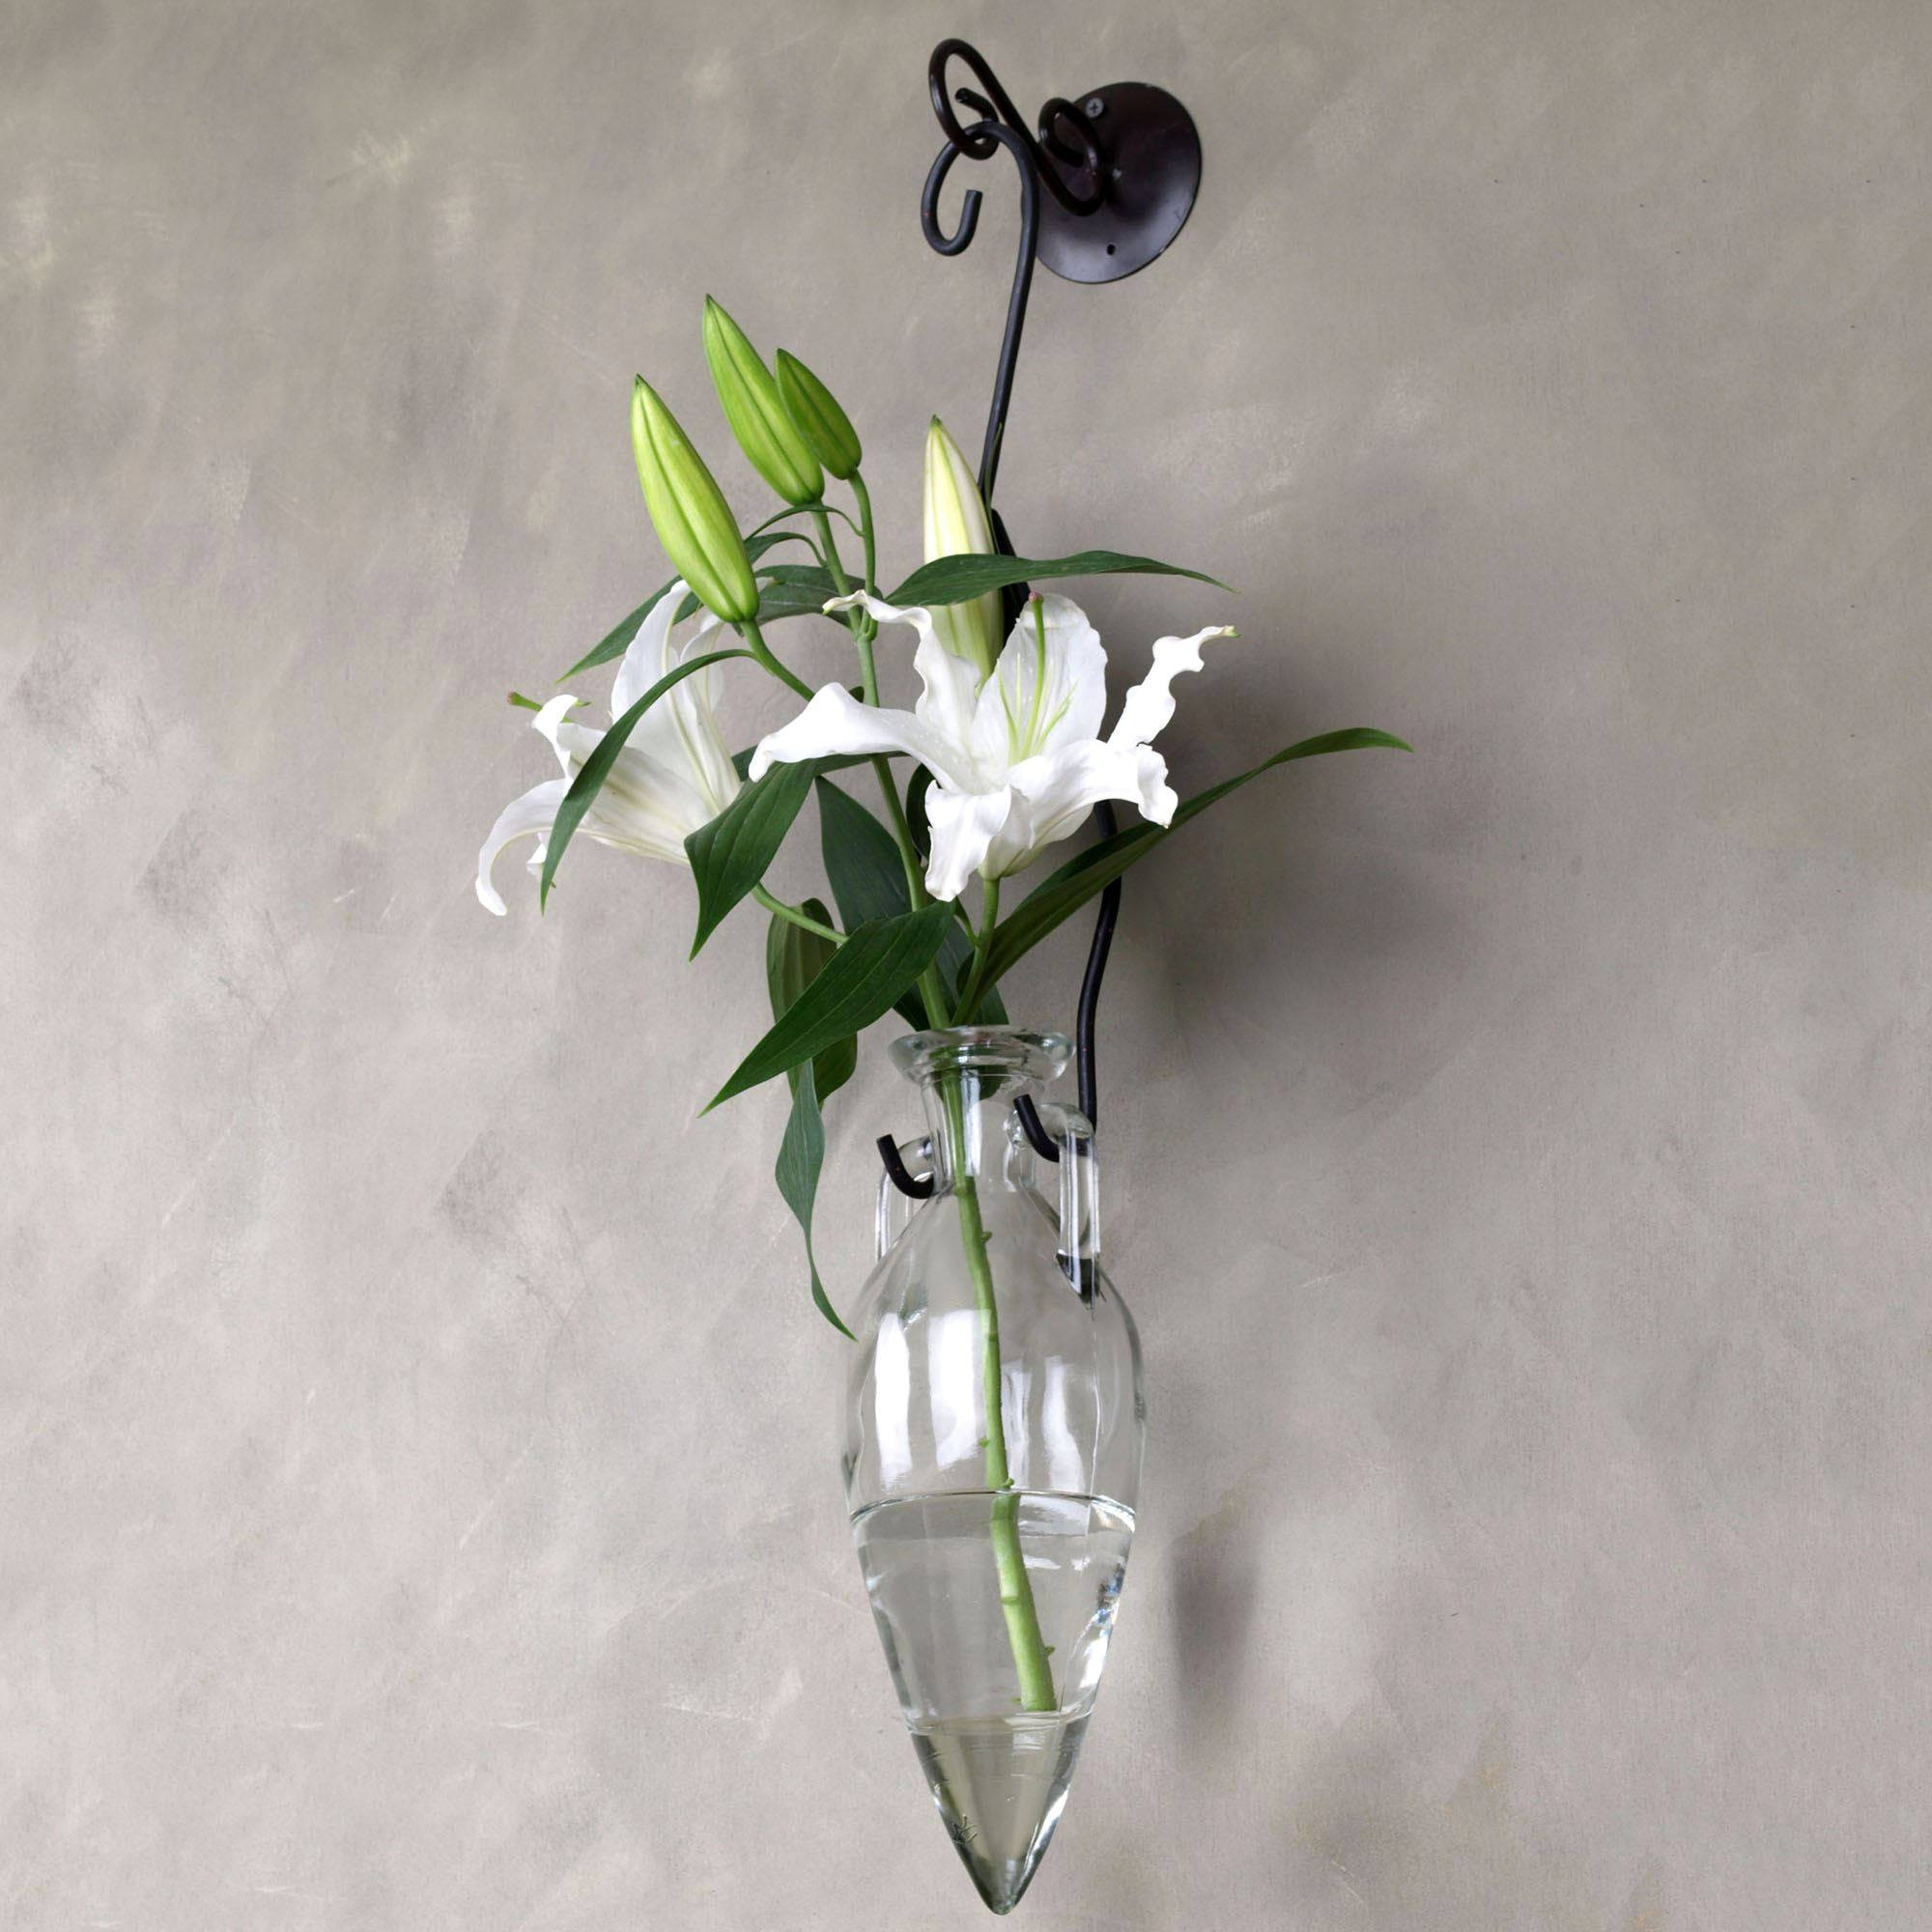 18 Elegant Cemetery Vase Liners 2021 free download cemetery vase liners of memory vase for wedding coolest 41 new wedding wall decor wedding for memory vase for wedding coolest 41 new wedding wall decor